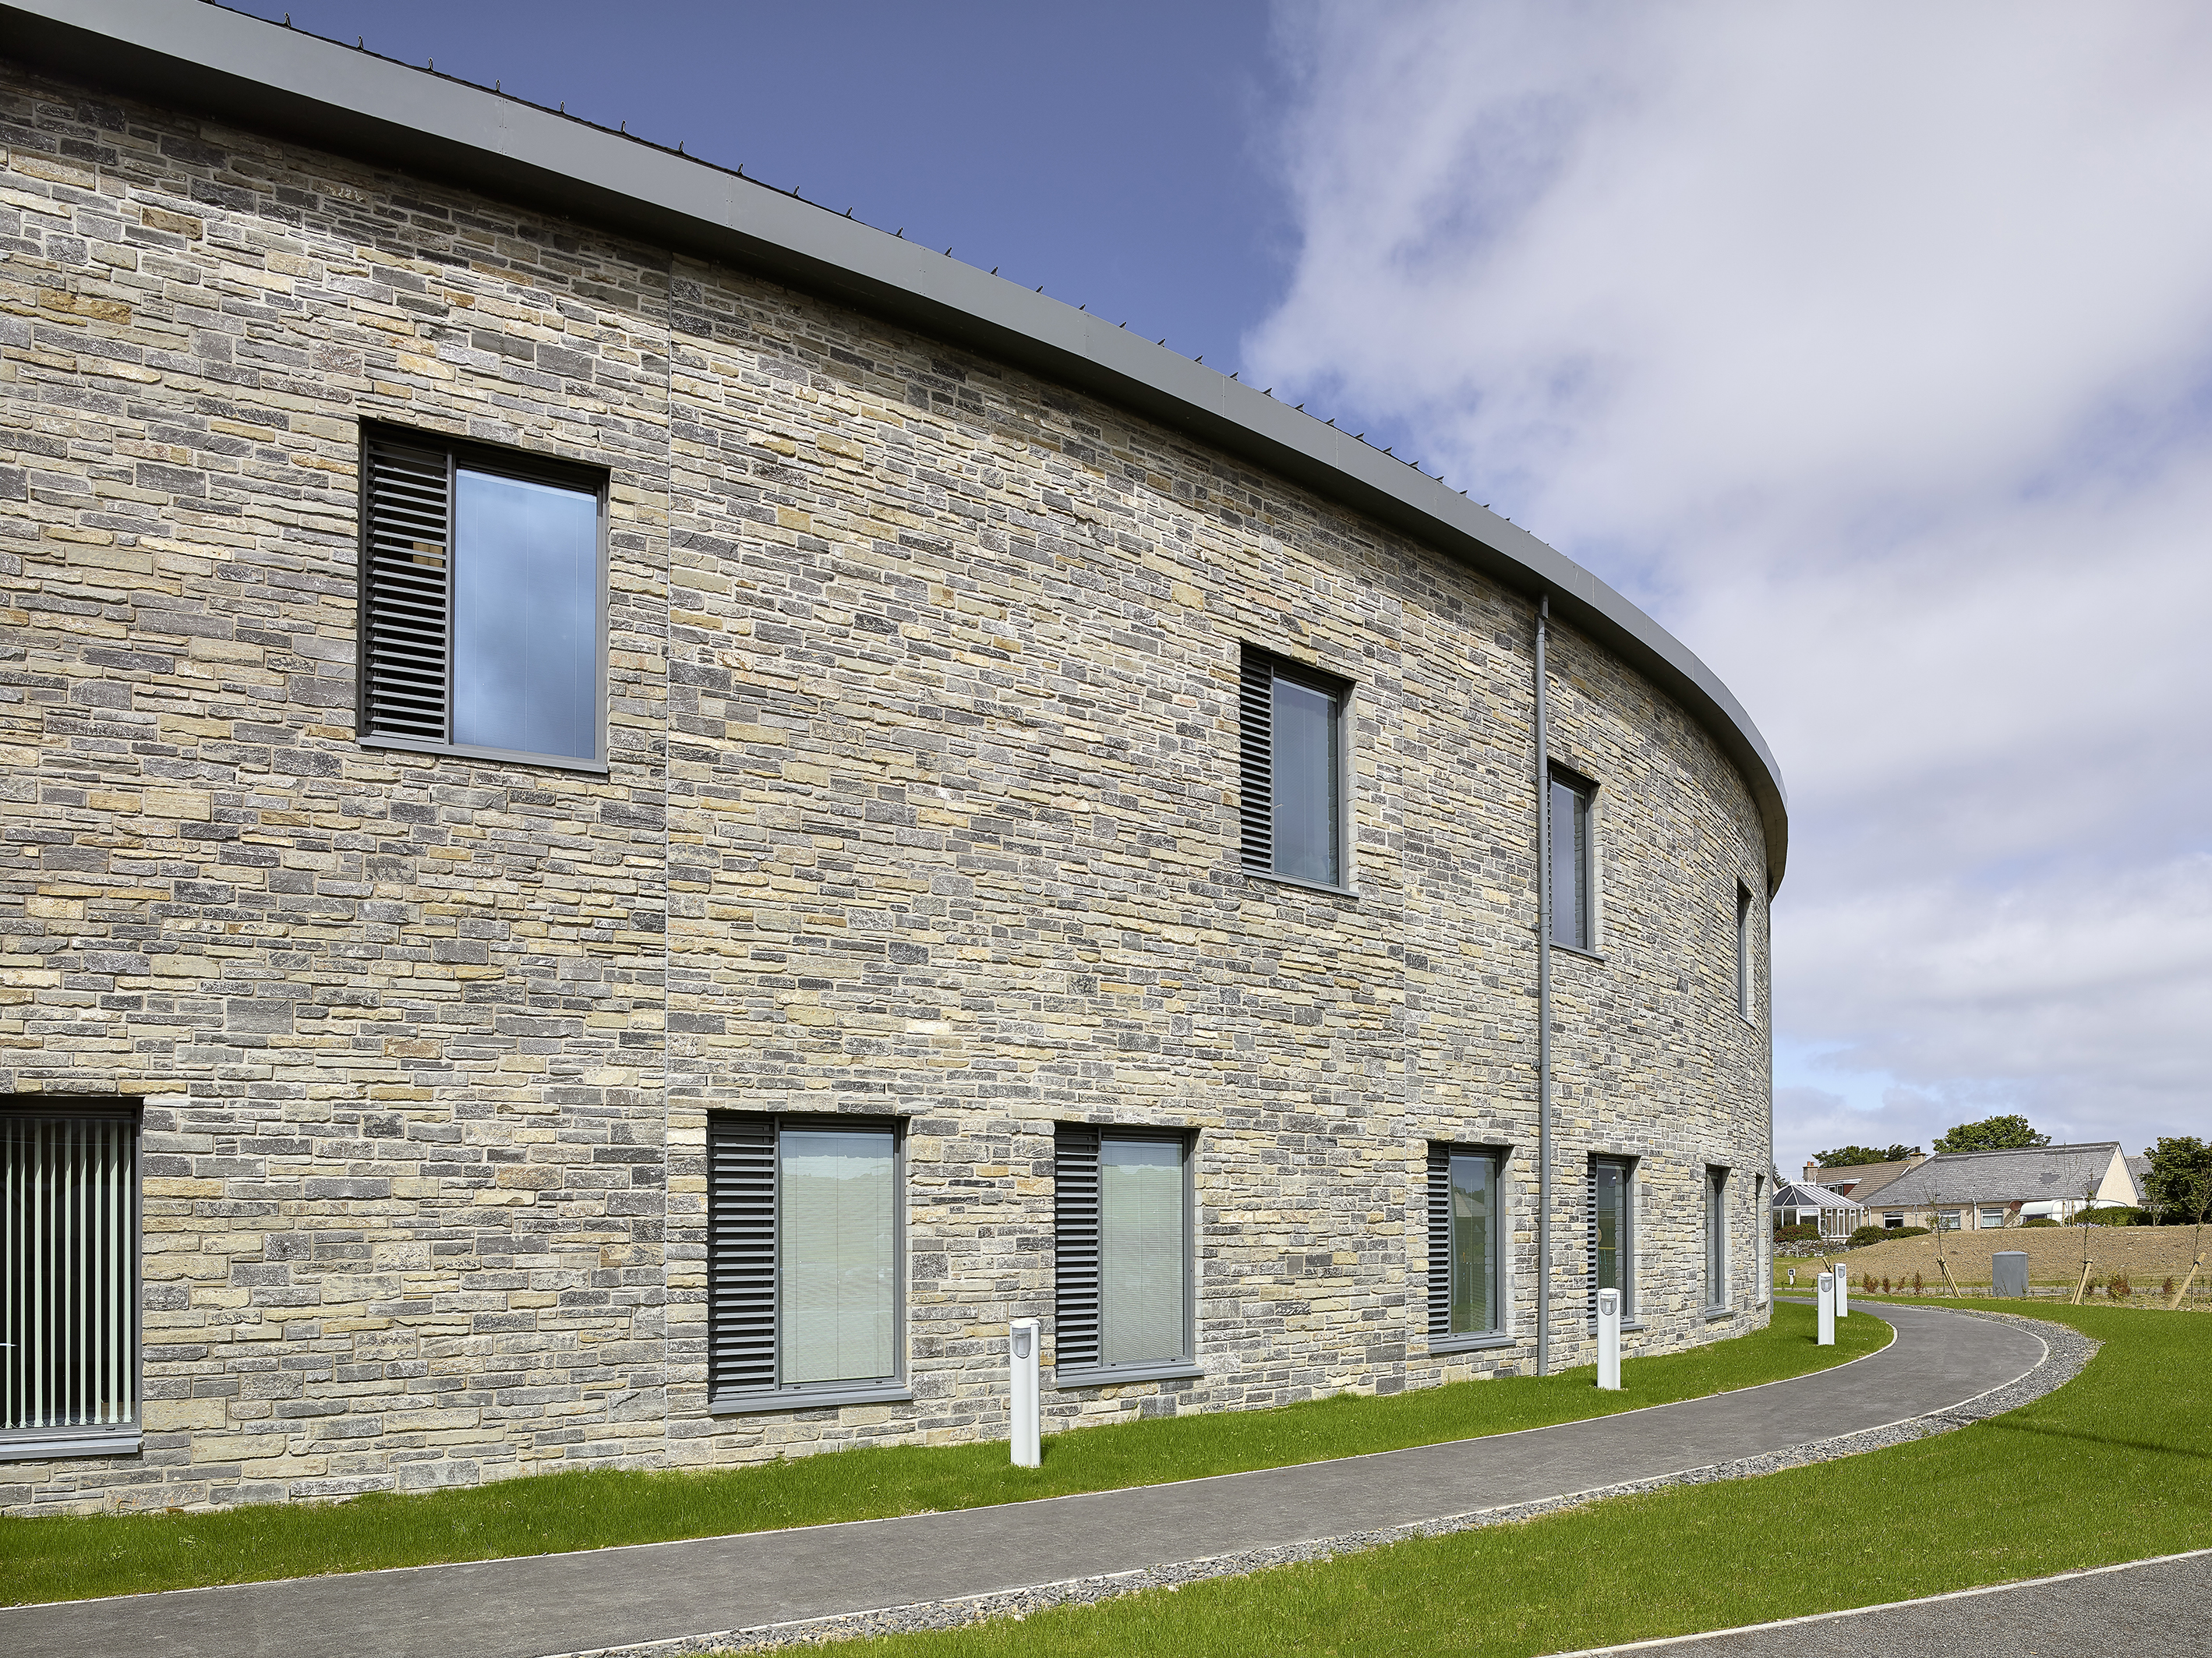 Consttruction of The Balfour, NHS Orkney Hospital and healthcare facility using local stone